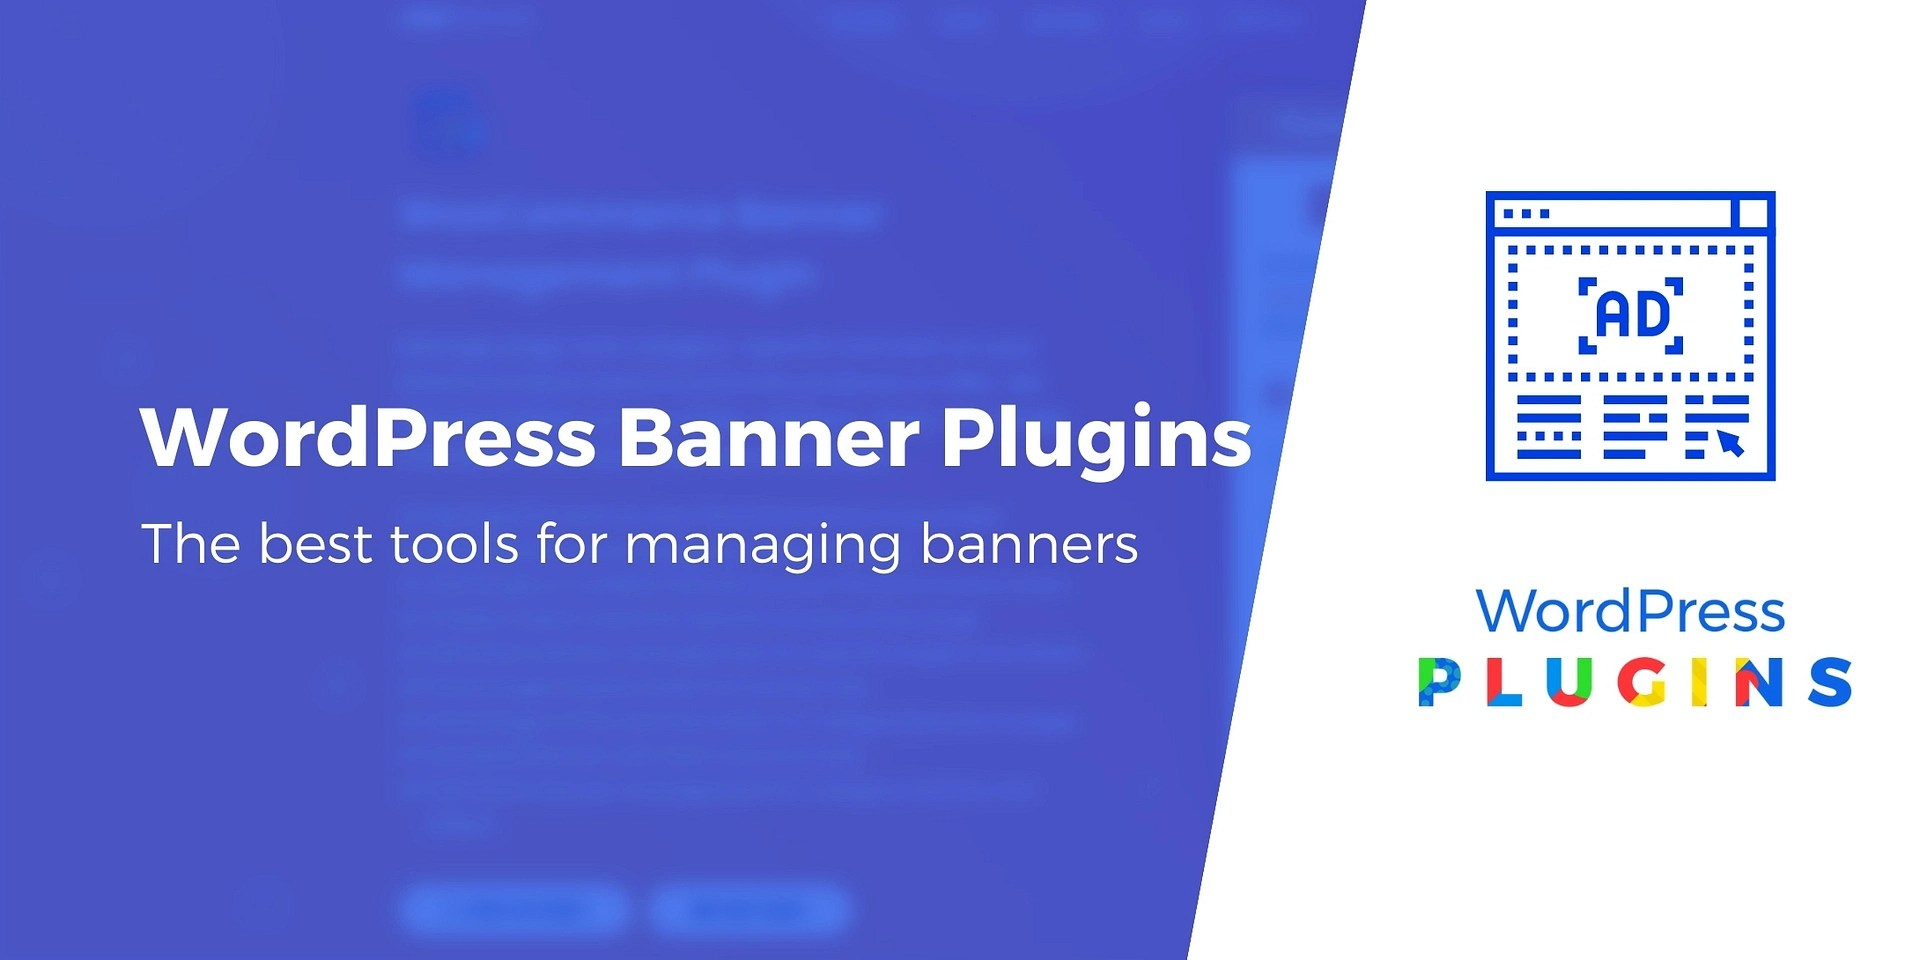 6 Best WordPress Banner Plugins in 2021 (Ads, Announcements + More)